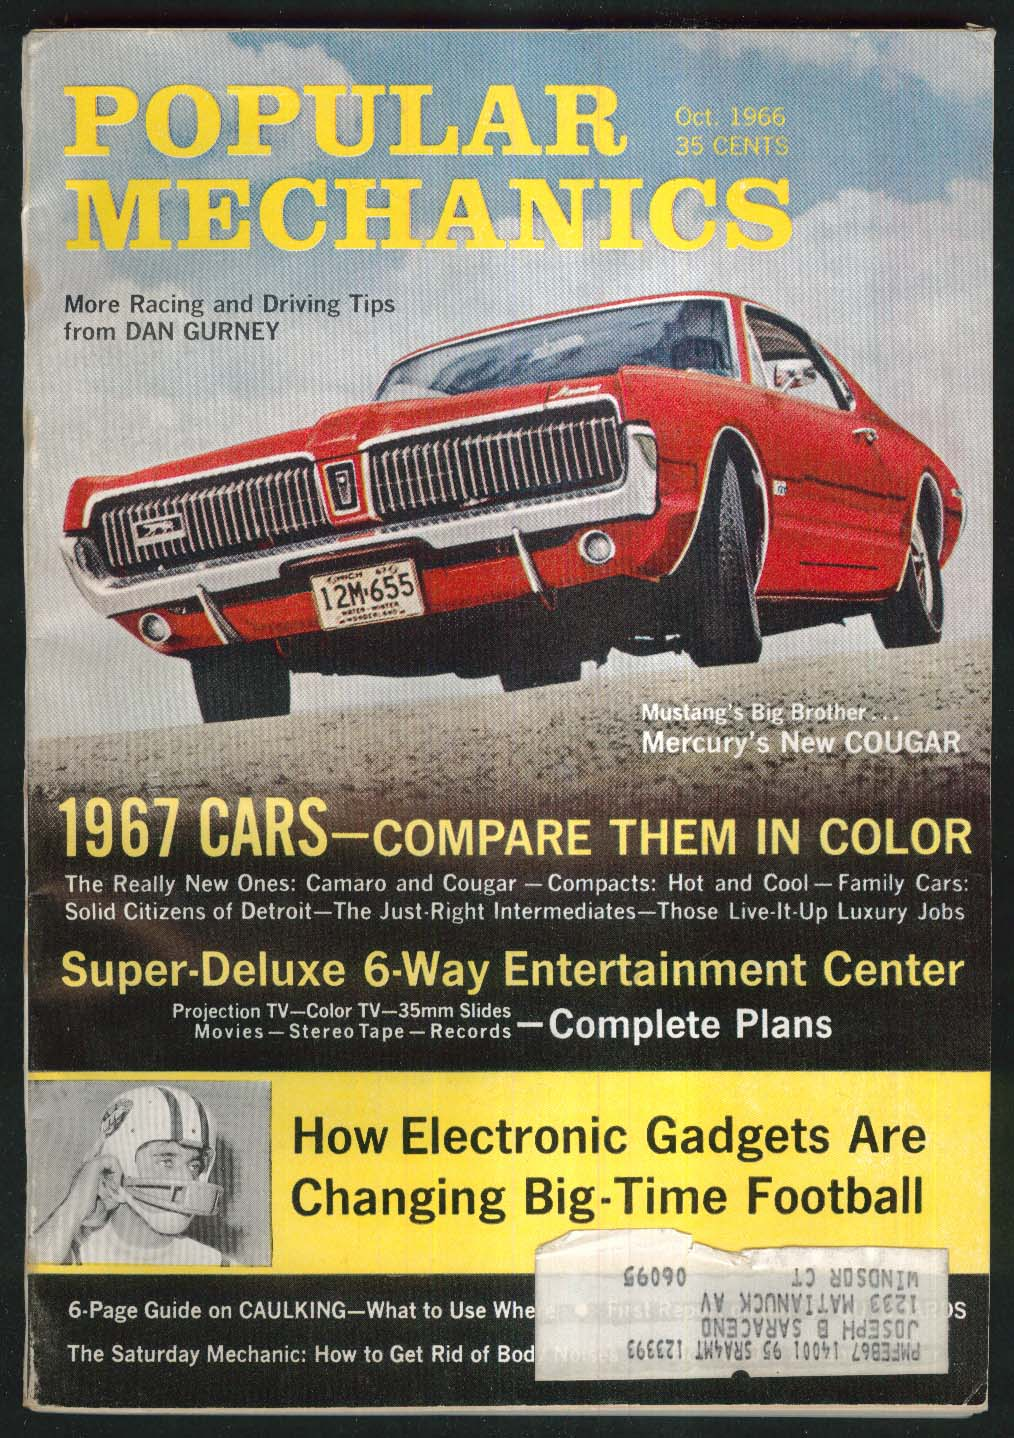 POPULAR MECHANICS 1967 Mercury Cougar Chevrolet Camaro comparison 10 1966